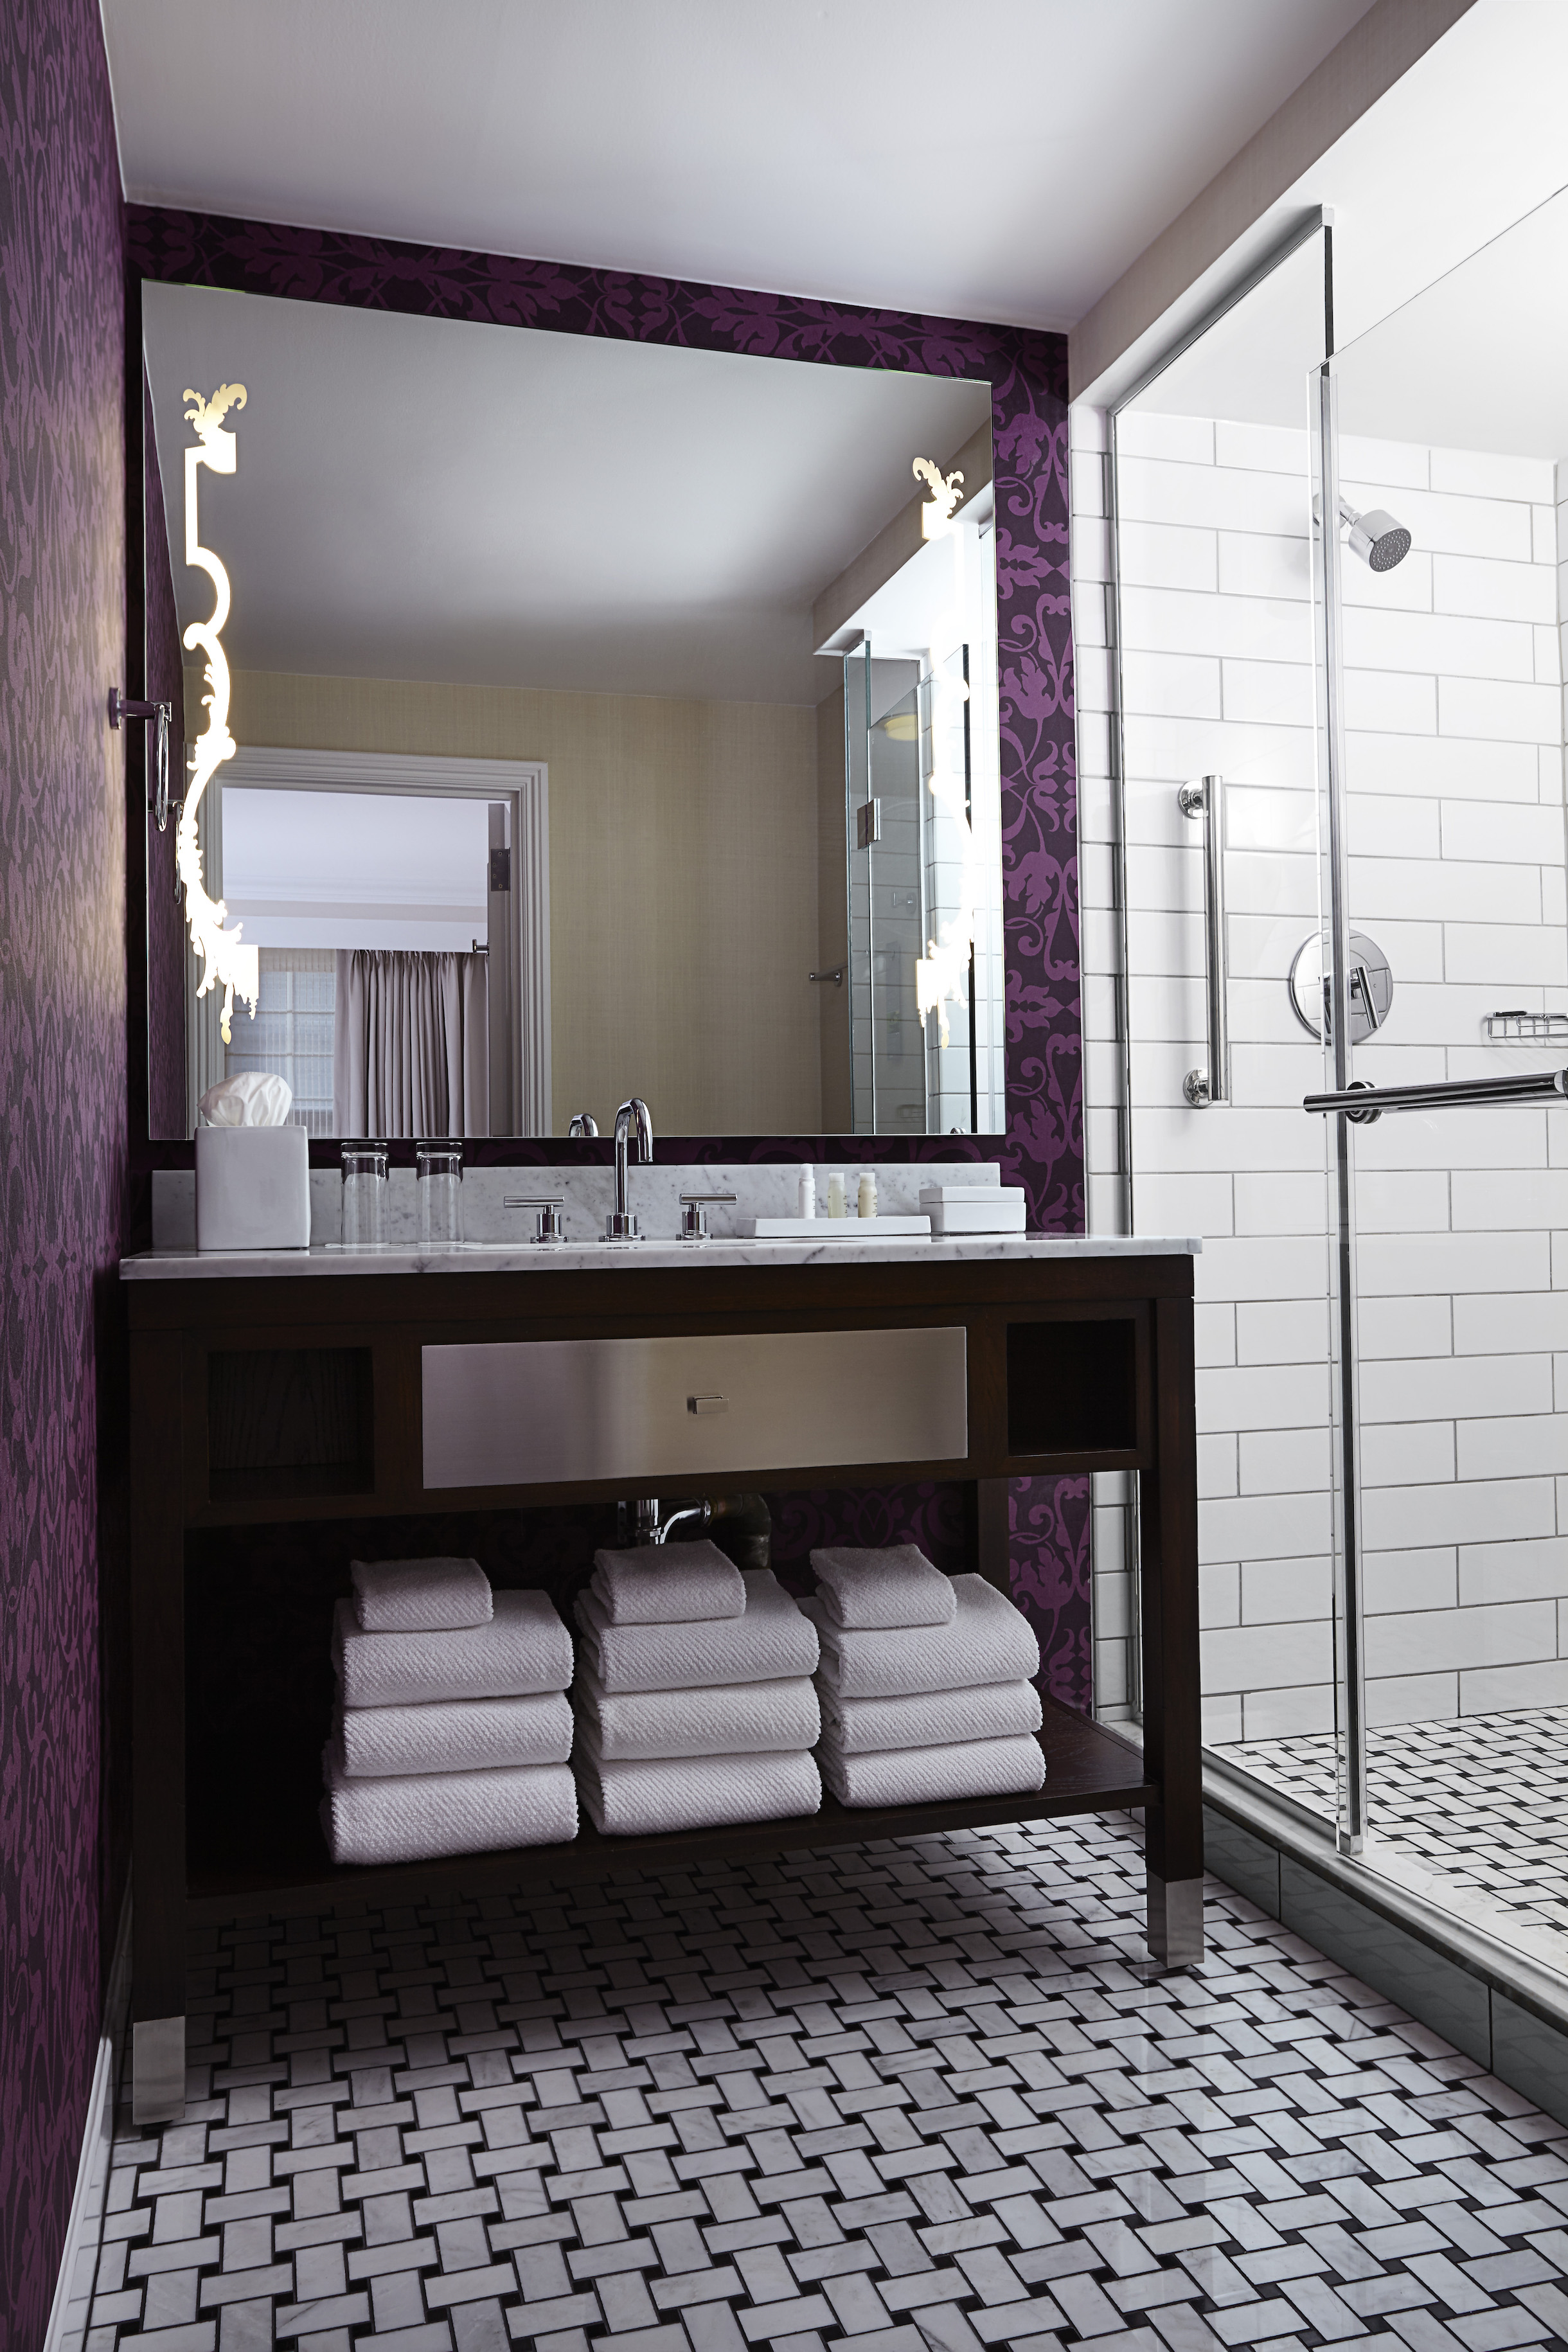 The Mayflower Hotel guest bathroom